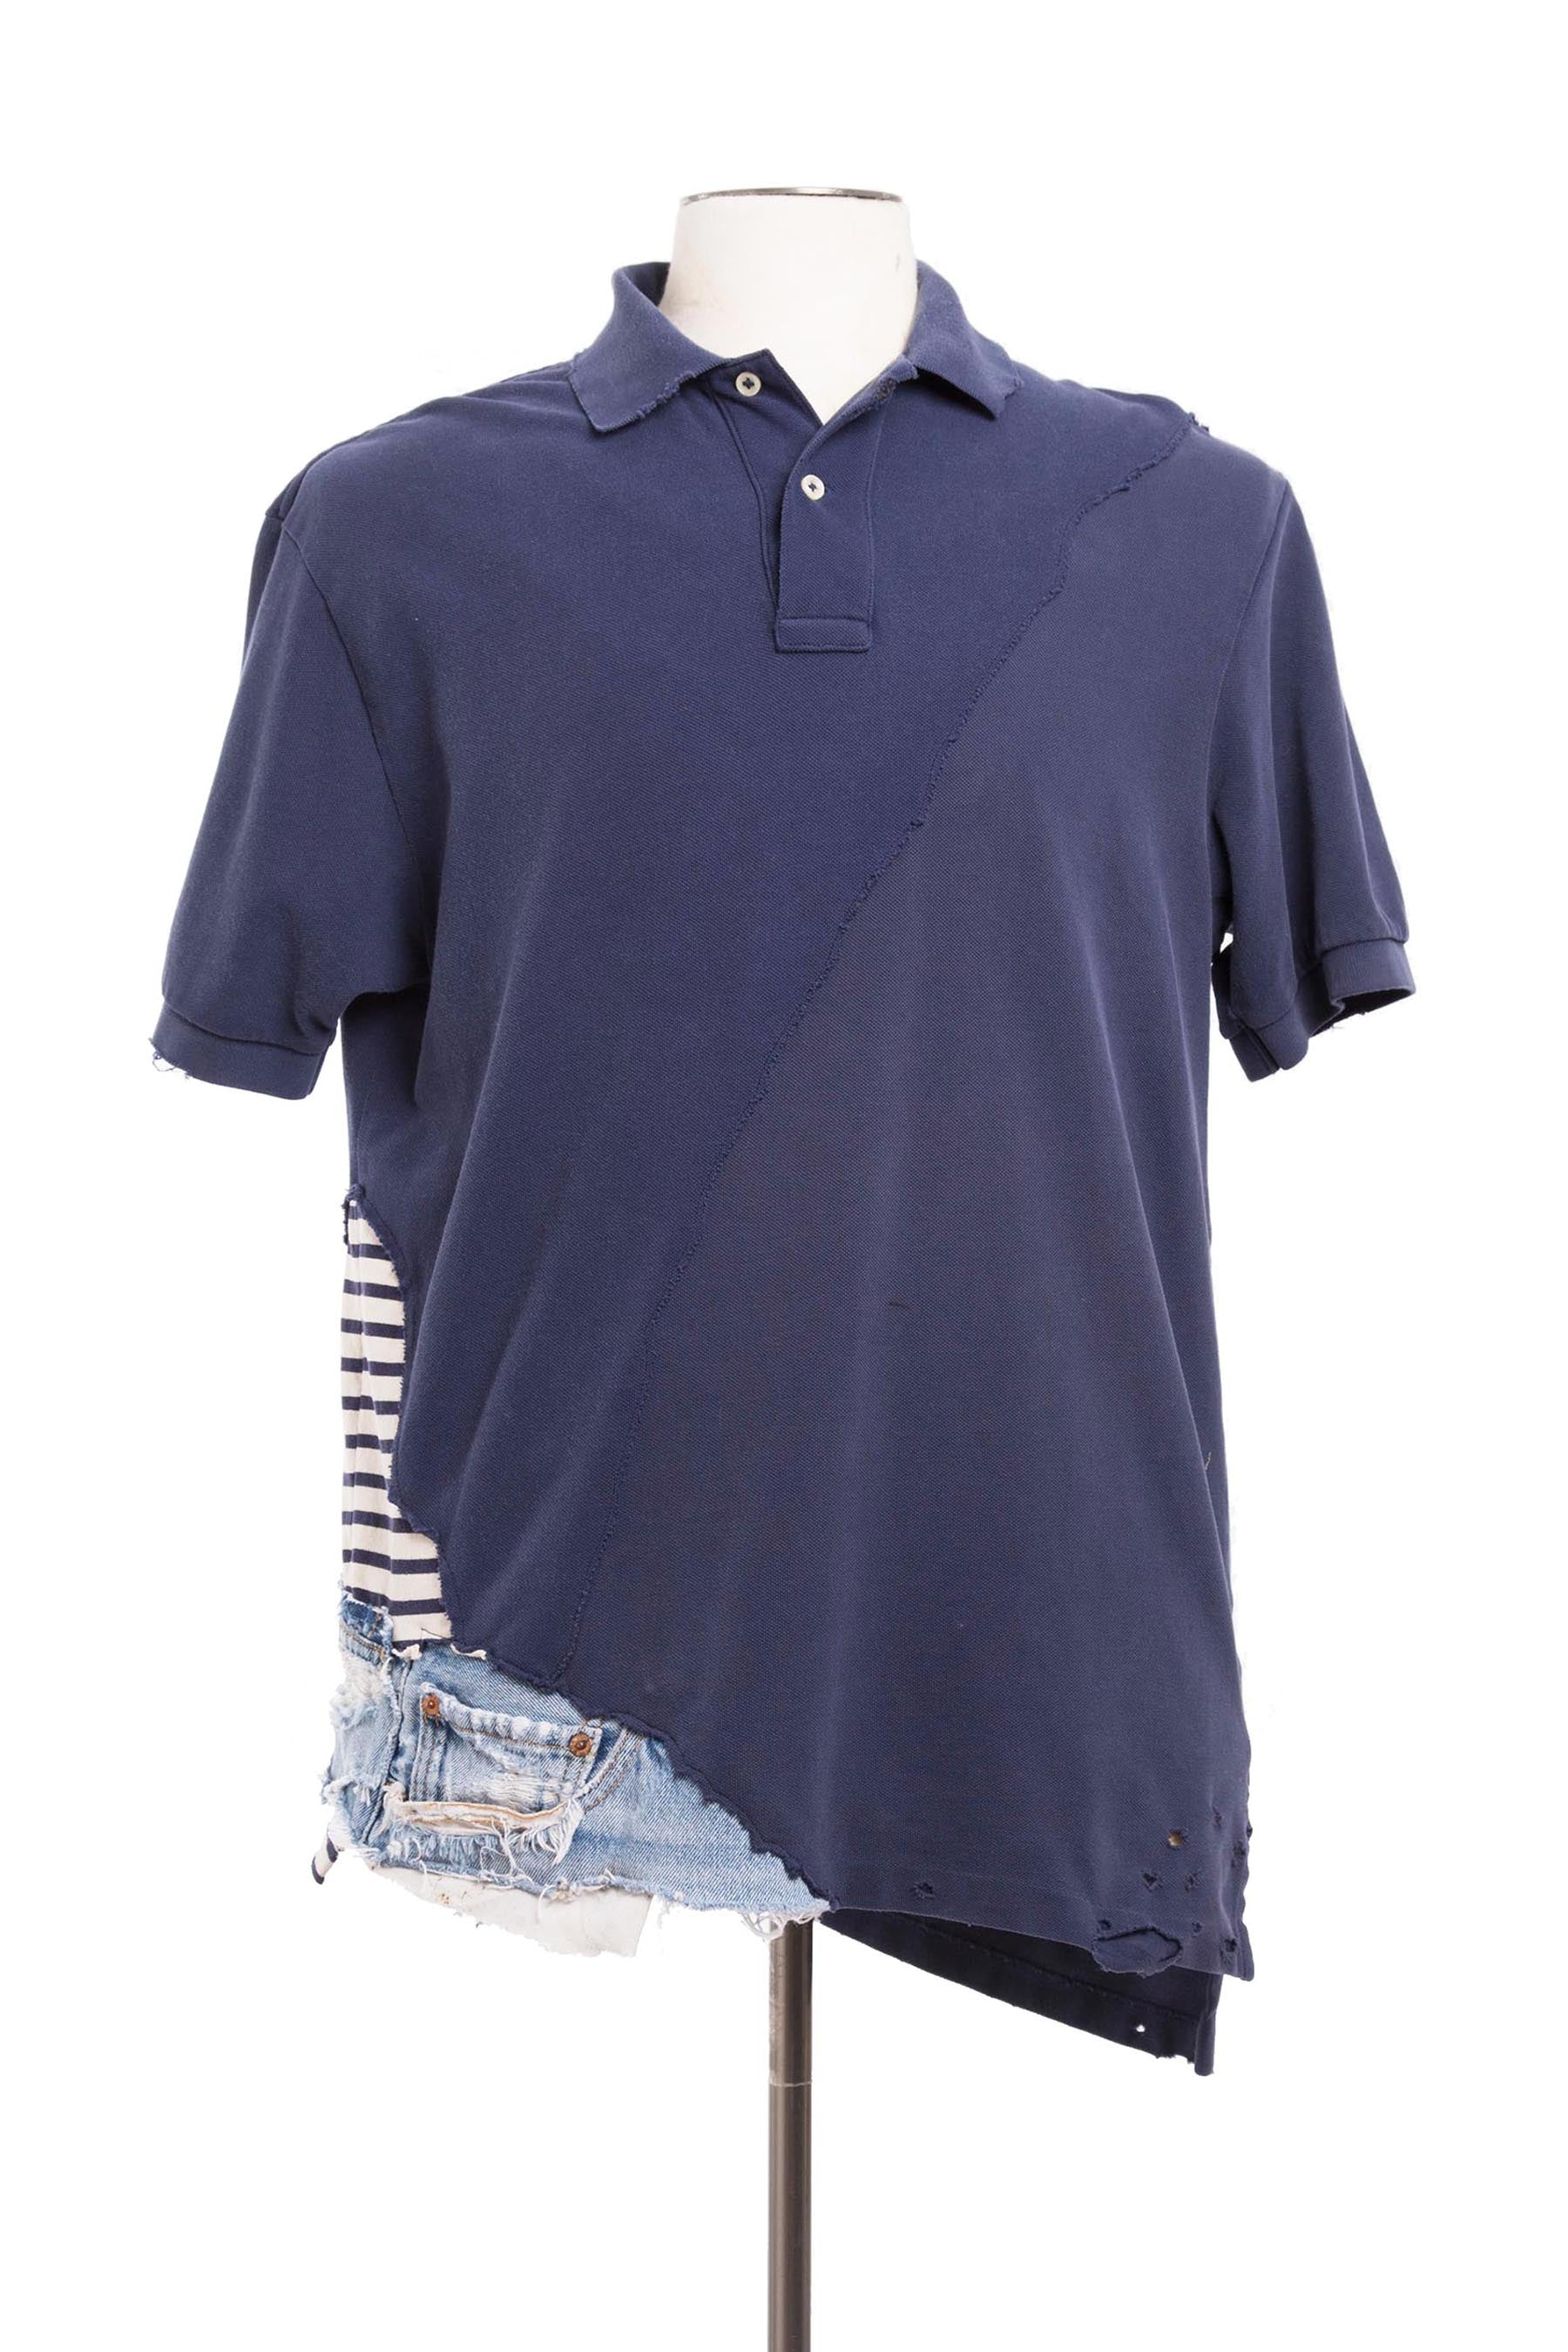 NAVY / DENIM POLO